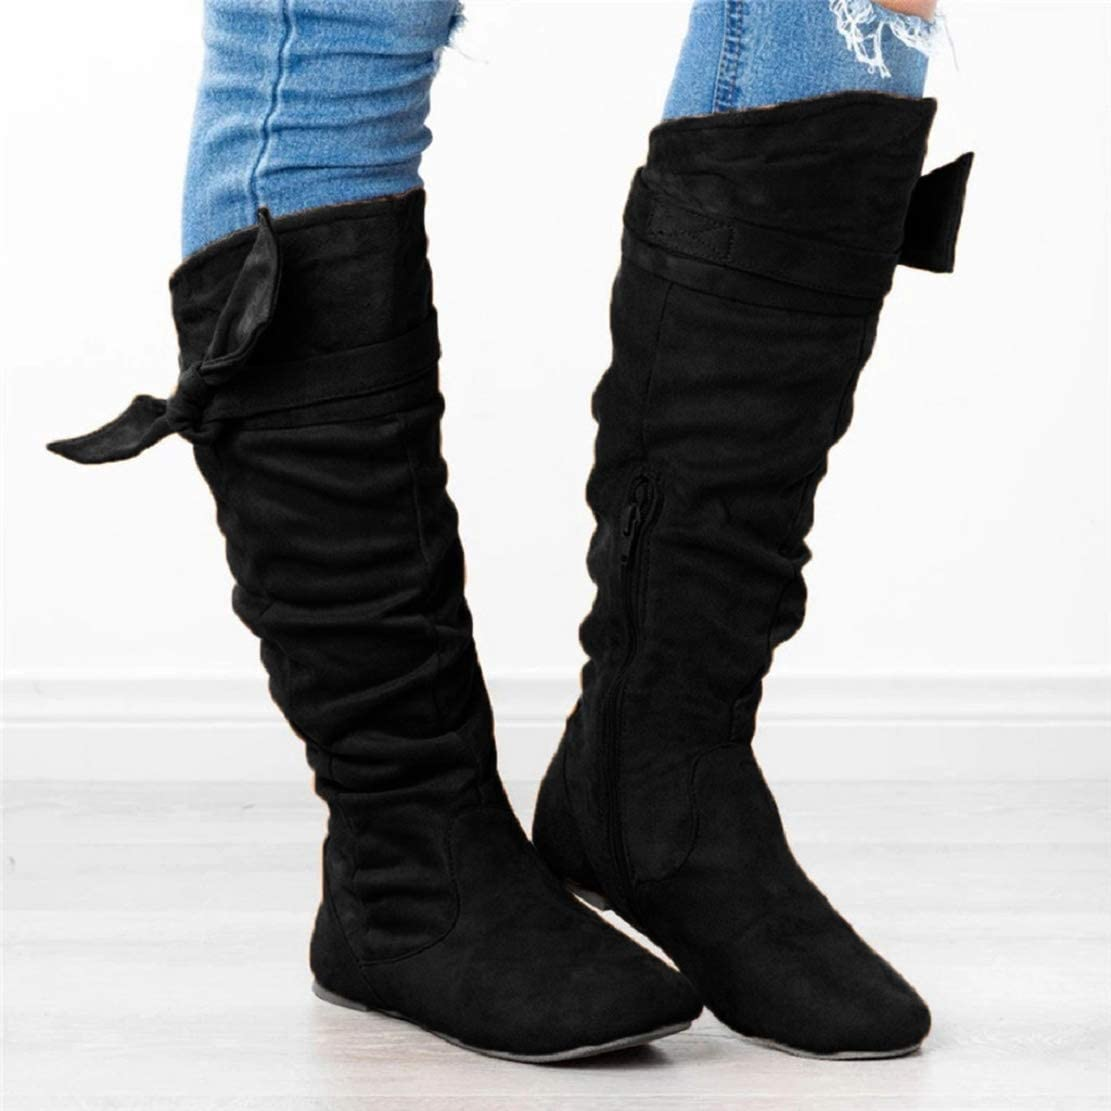 LowProfile Knee High Boots for Women No